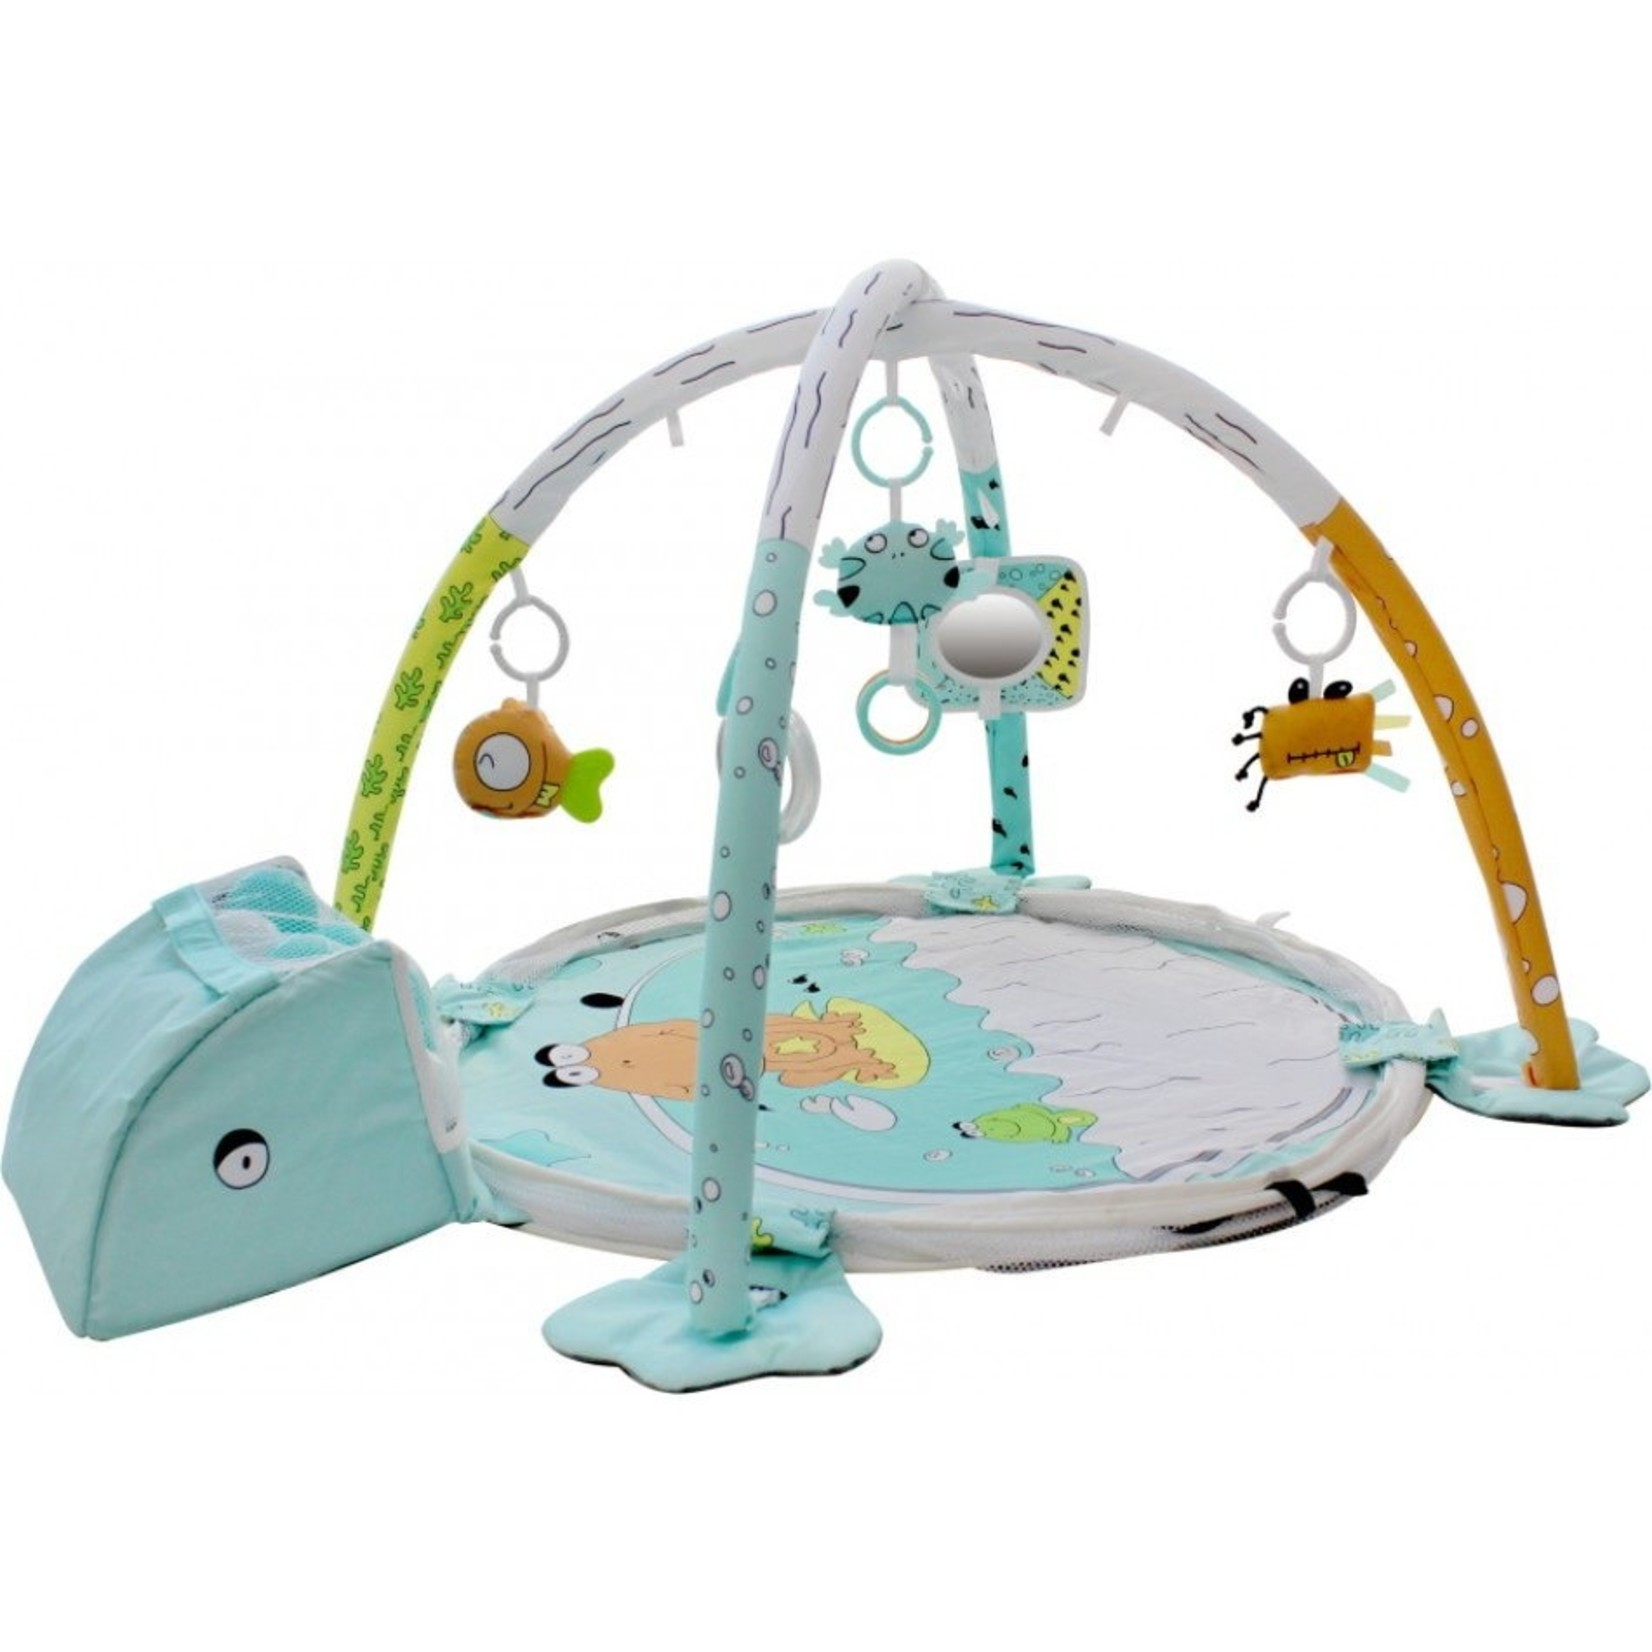 Tryco Tryco Speelkleed/Ballenbad 3 in 1 Ball Pit Activity Gym Frog